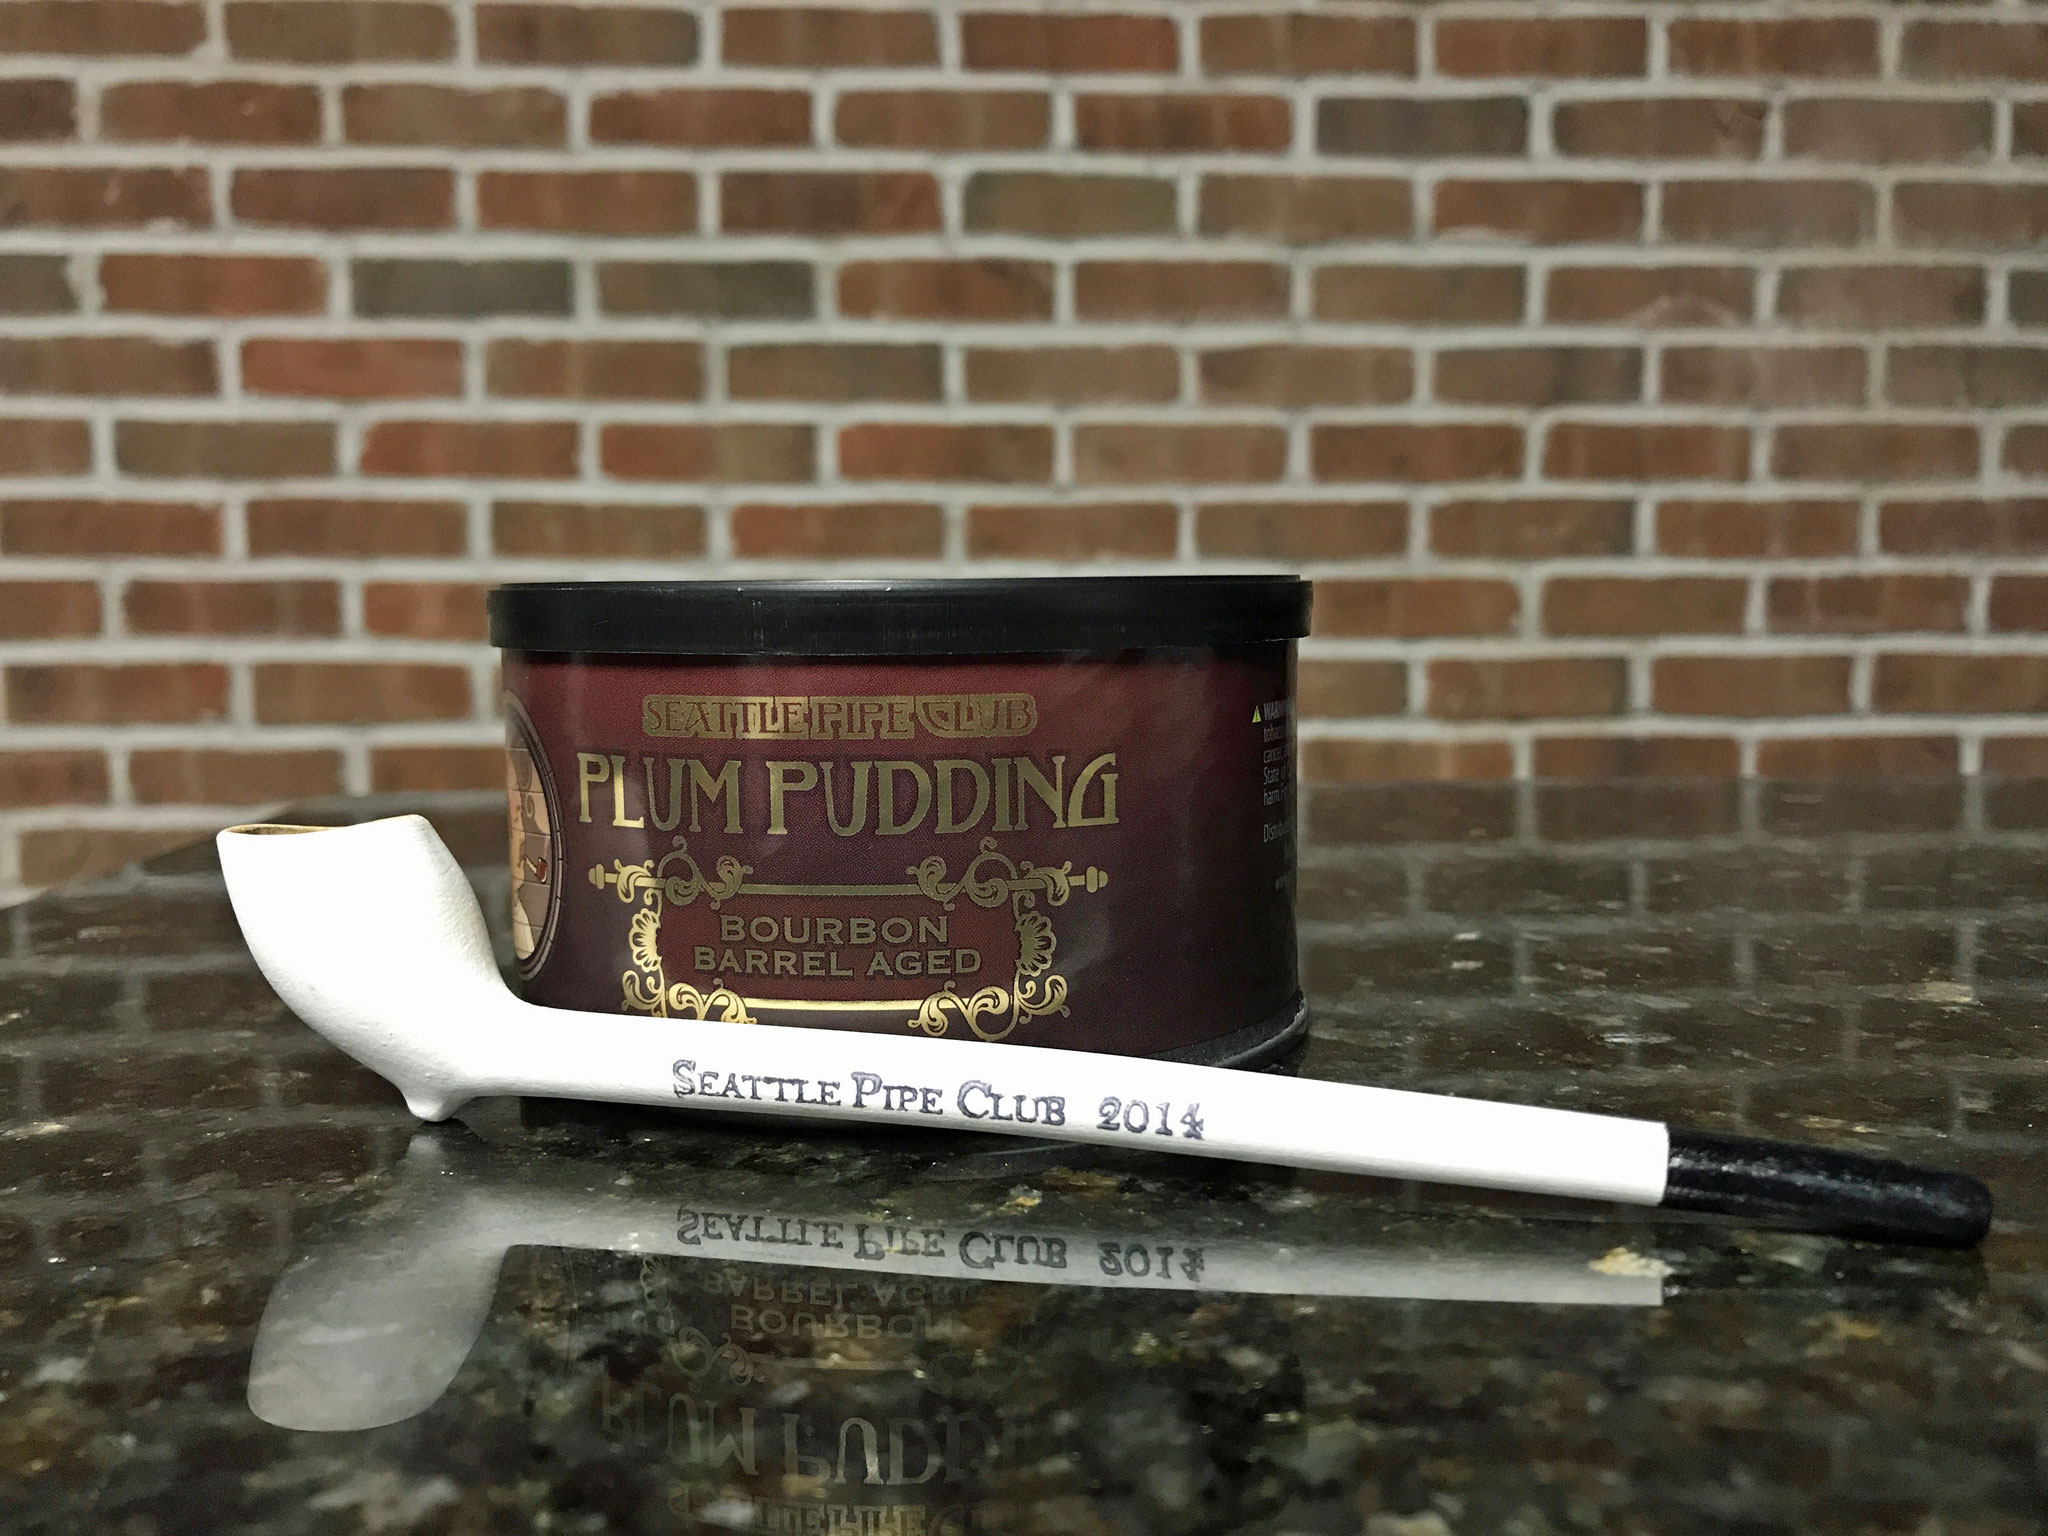 Review: Plum Pudding Bourbon Barrel Aged by Seattle Pipe Club